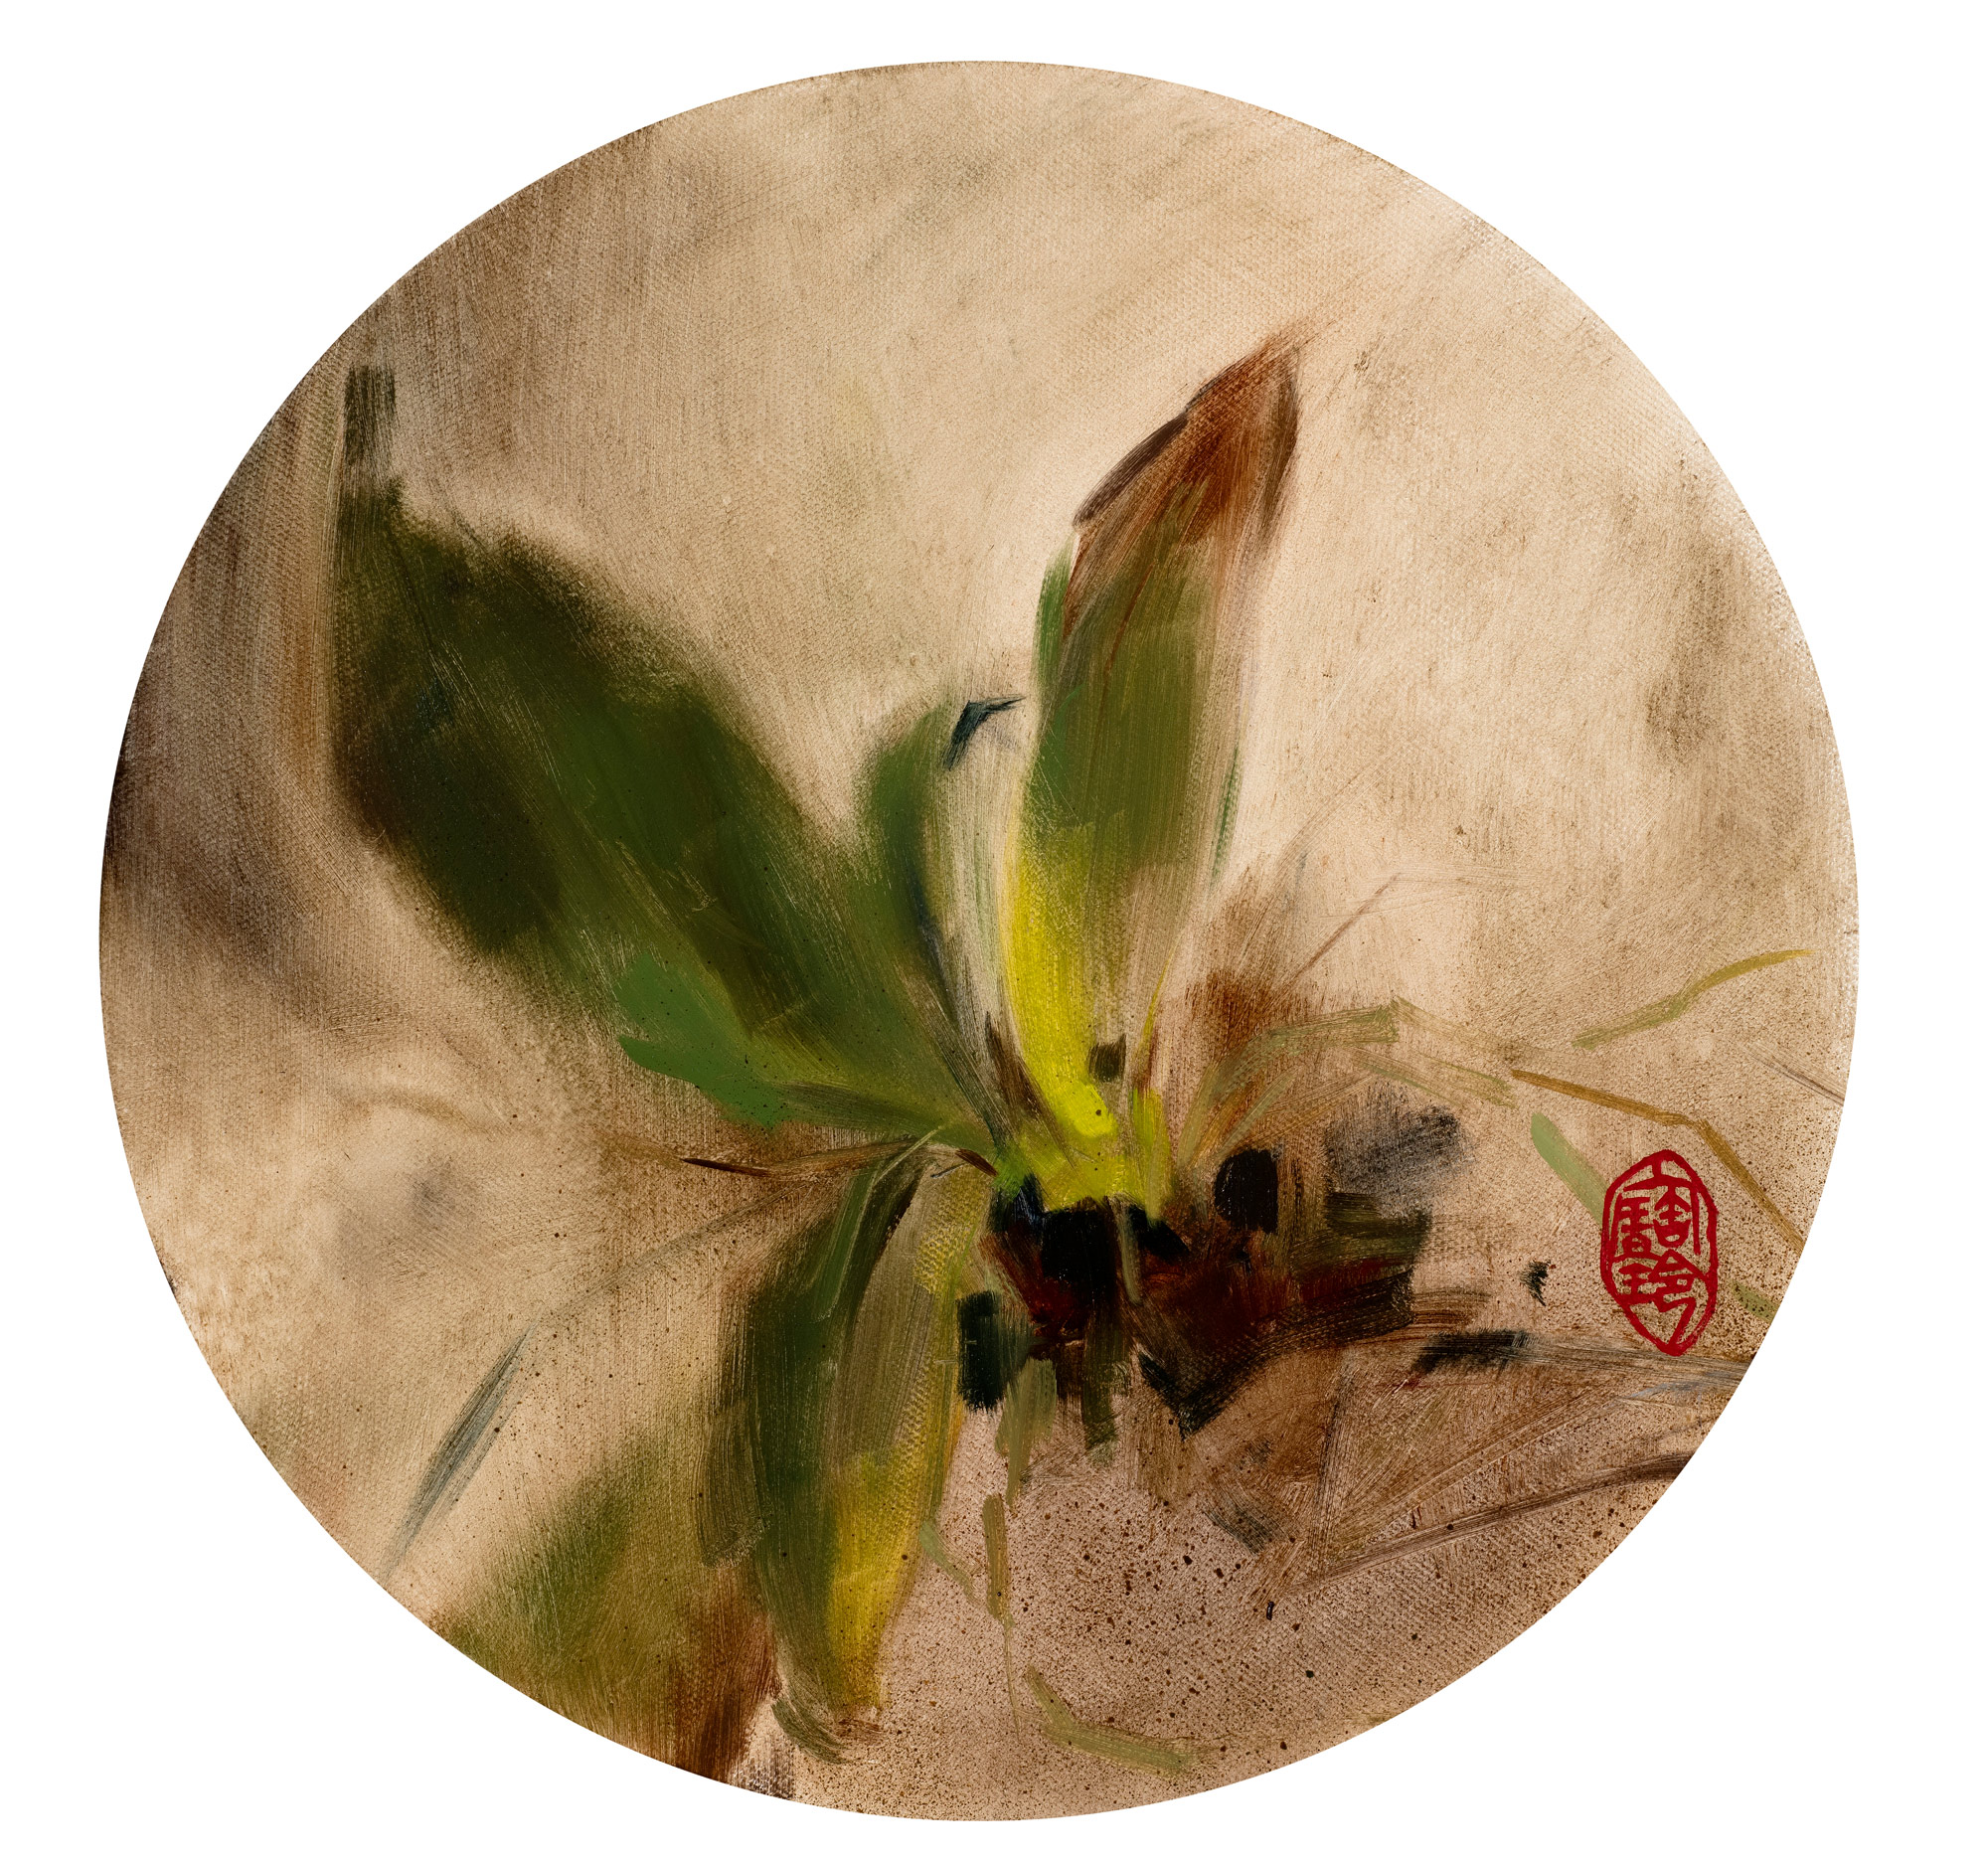 Pau Ling Yap | Fioritura (right) | Oil on circular canvas | 31cm diameter | Sold as a pair with Fioritura (left) | £4000 for pair